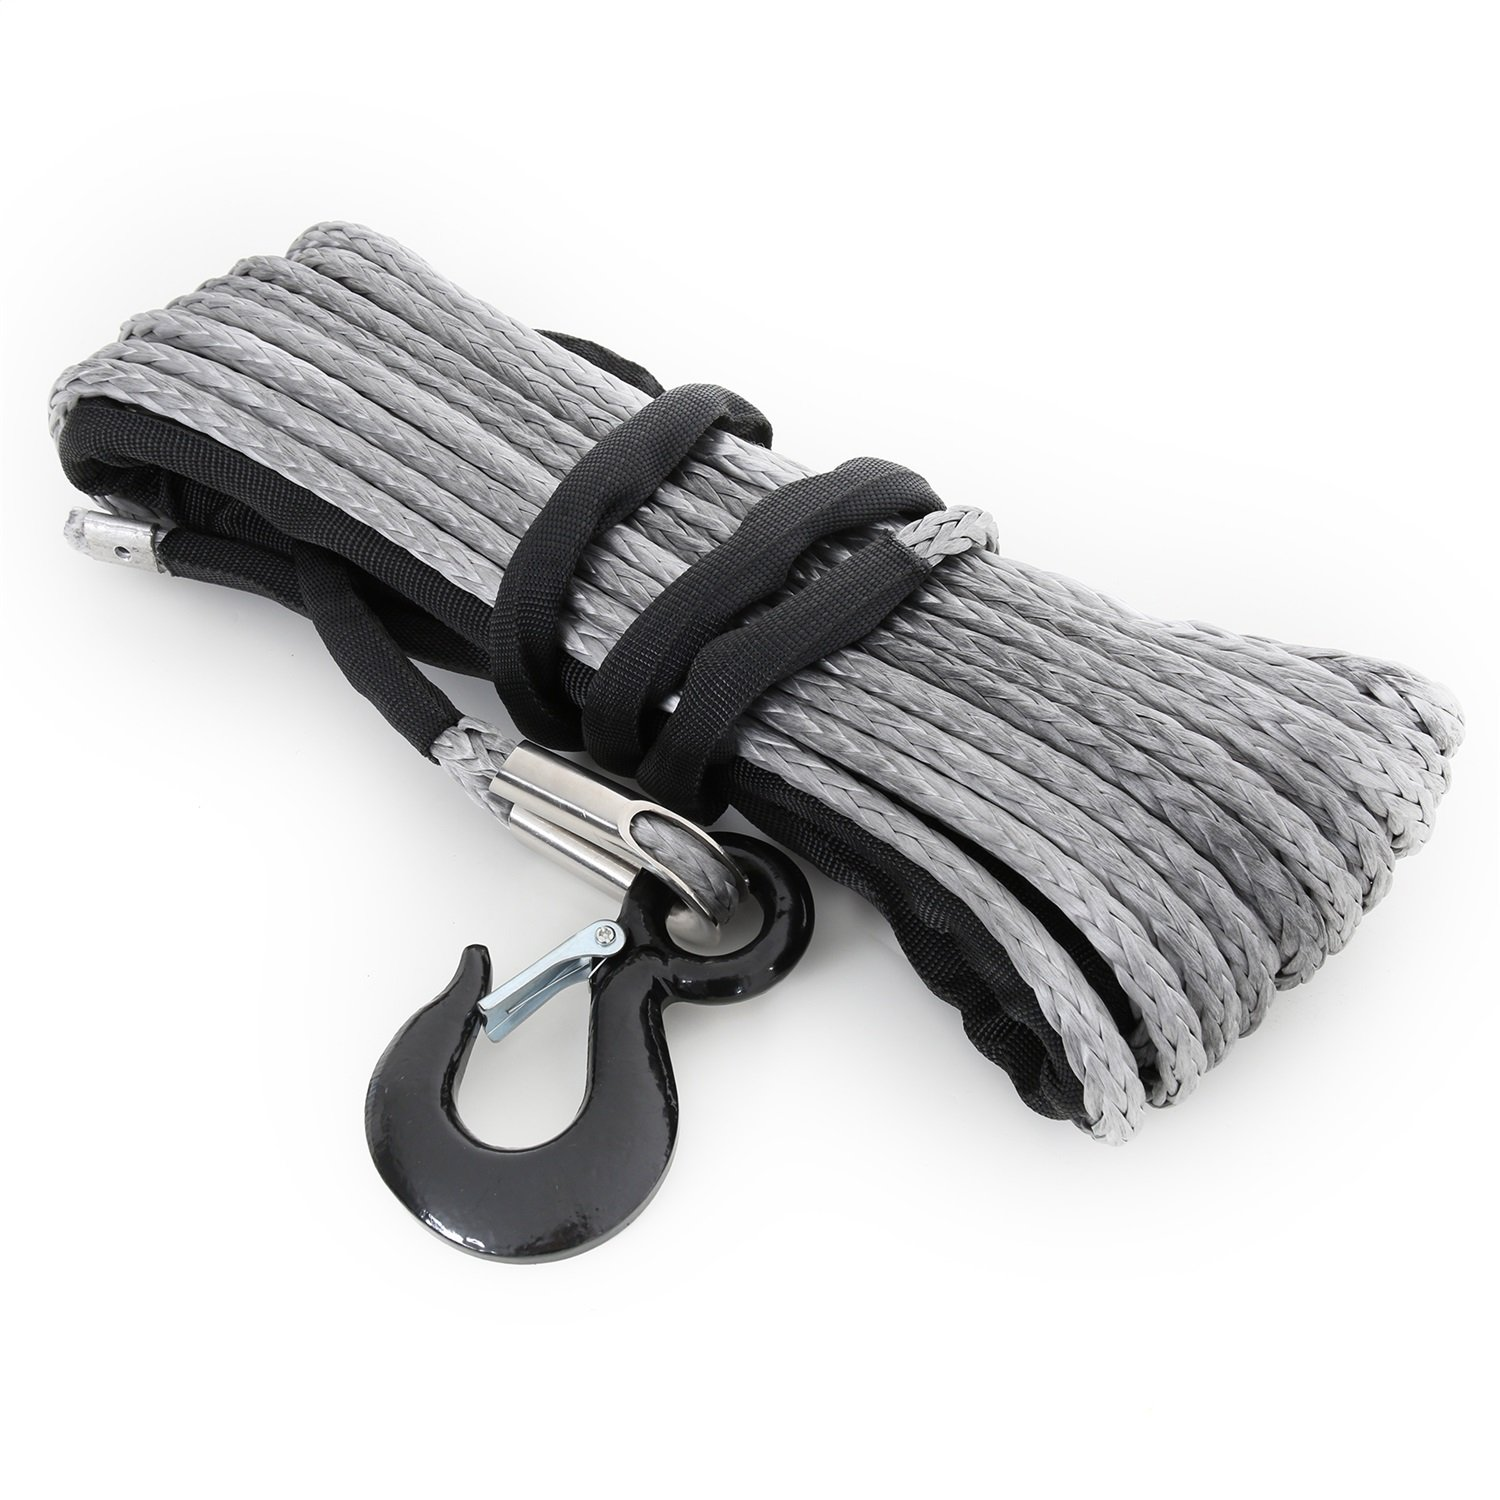 Smittybilt 97712 7/16'' x 88' Synthetic Winch Rope - 12000 lbs. Capacity